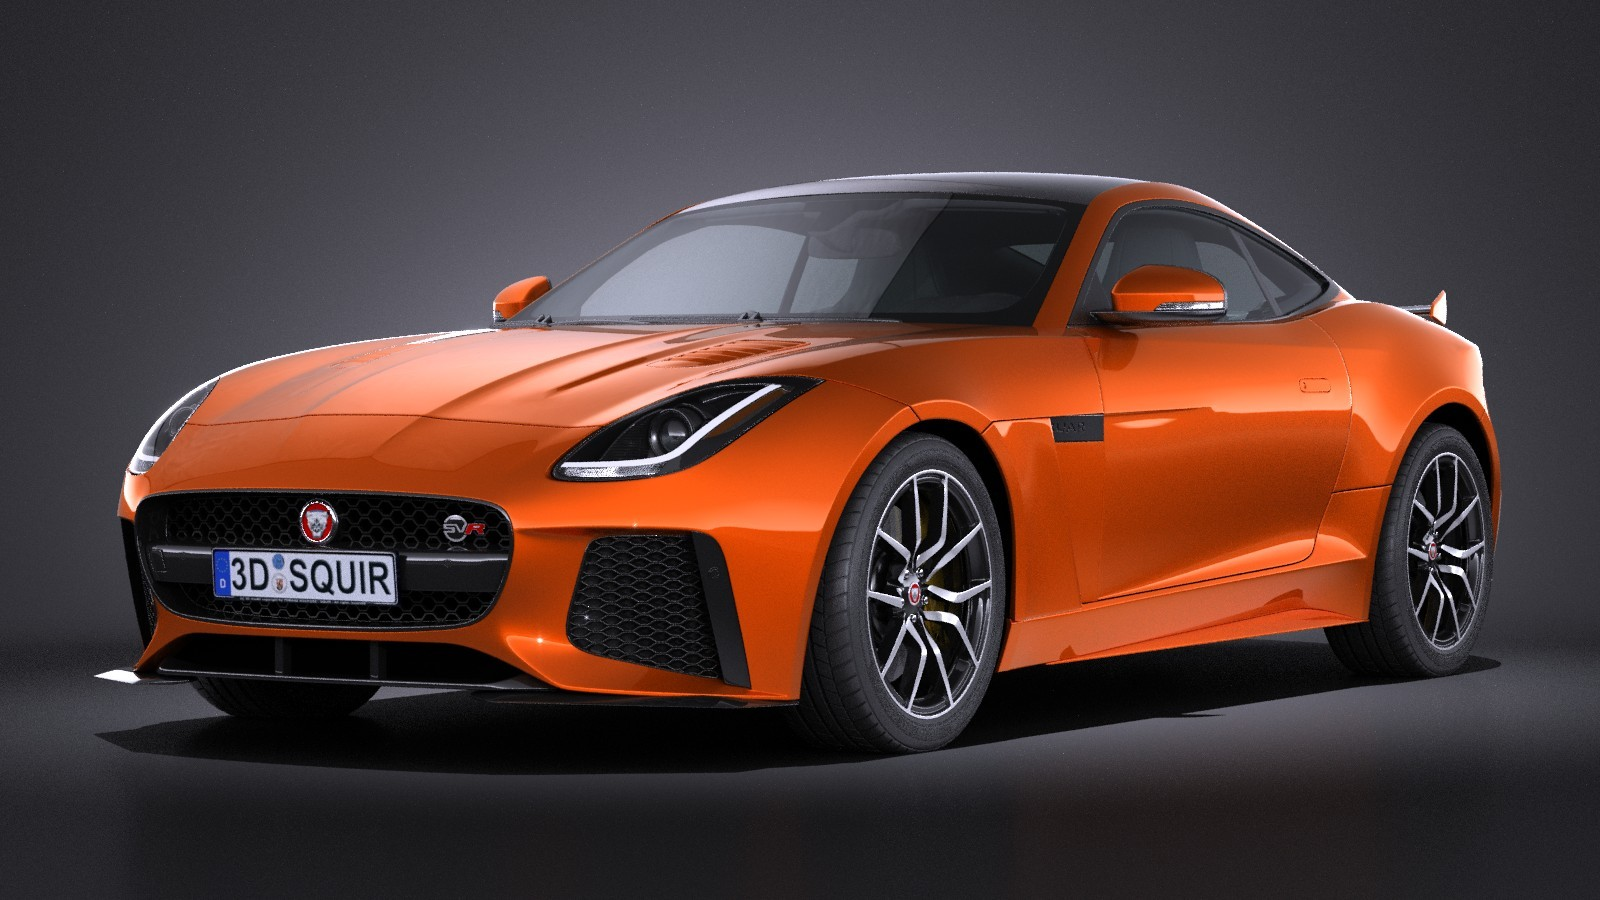 2017 Jaguar Lineup >> Jaguar F-Type - Driveline Fleet - Car Leasing